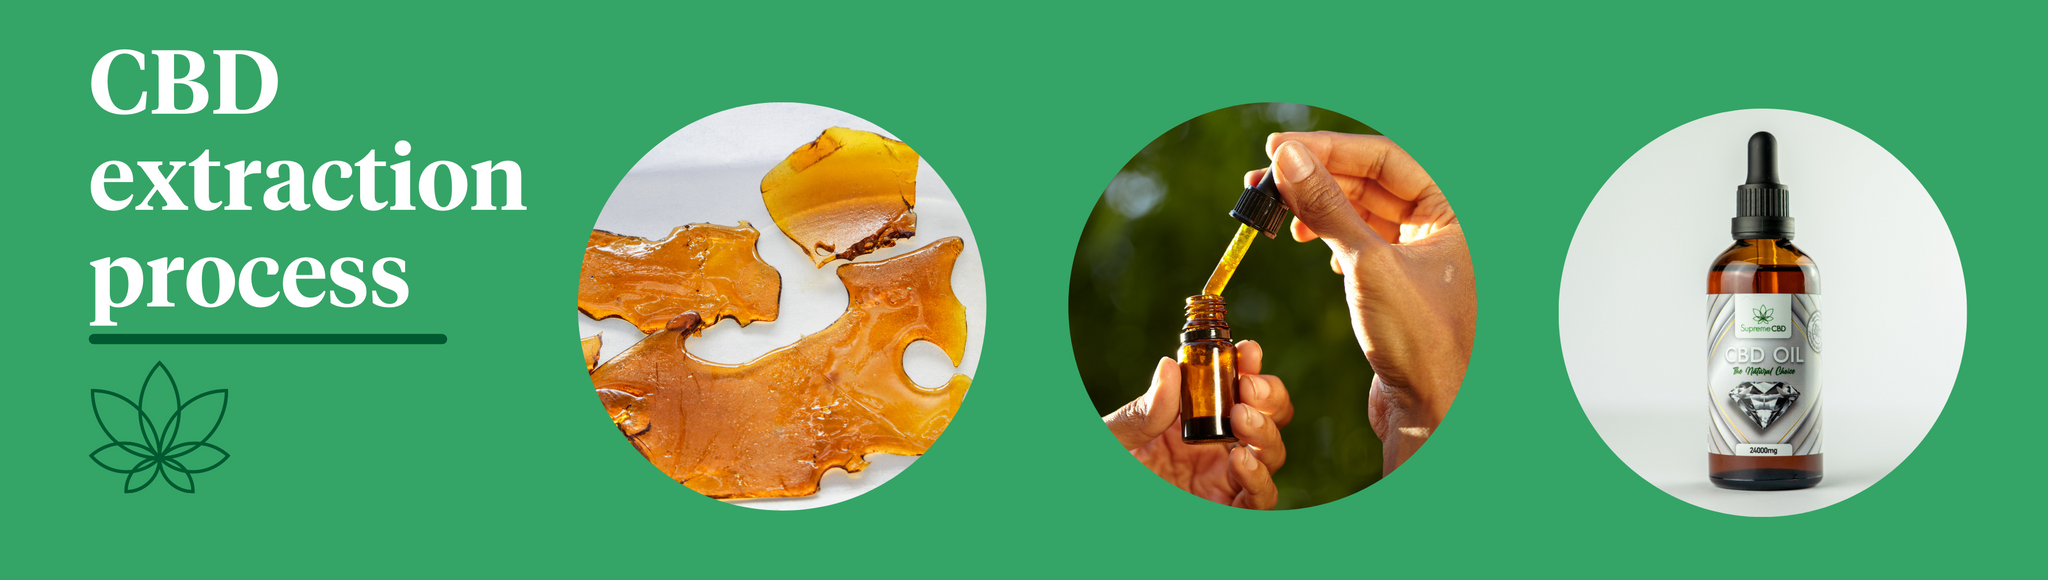 """A green background with the Supreme CBD logo to the right with white text saying """"CBD extraction process"""" with three circular images showcasing the process of extracting CBD."""